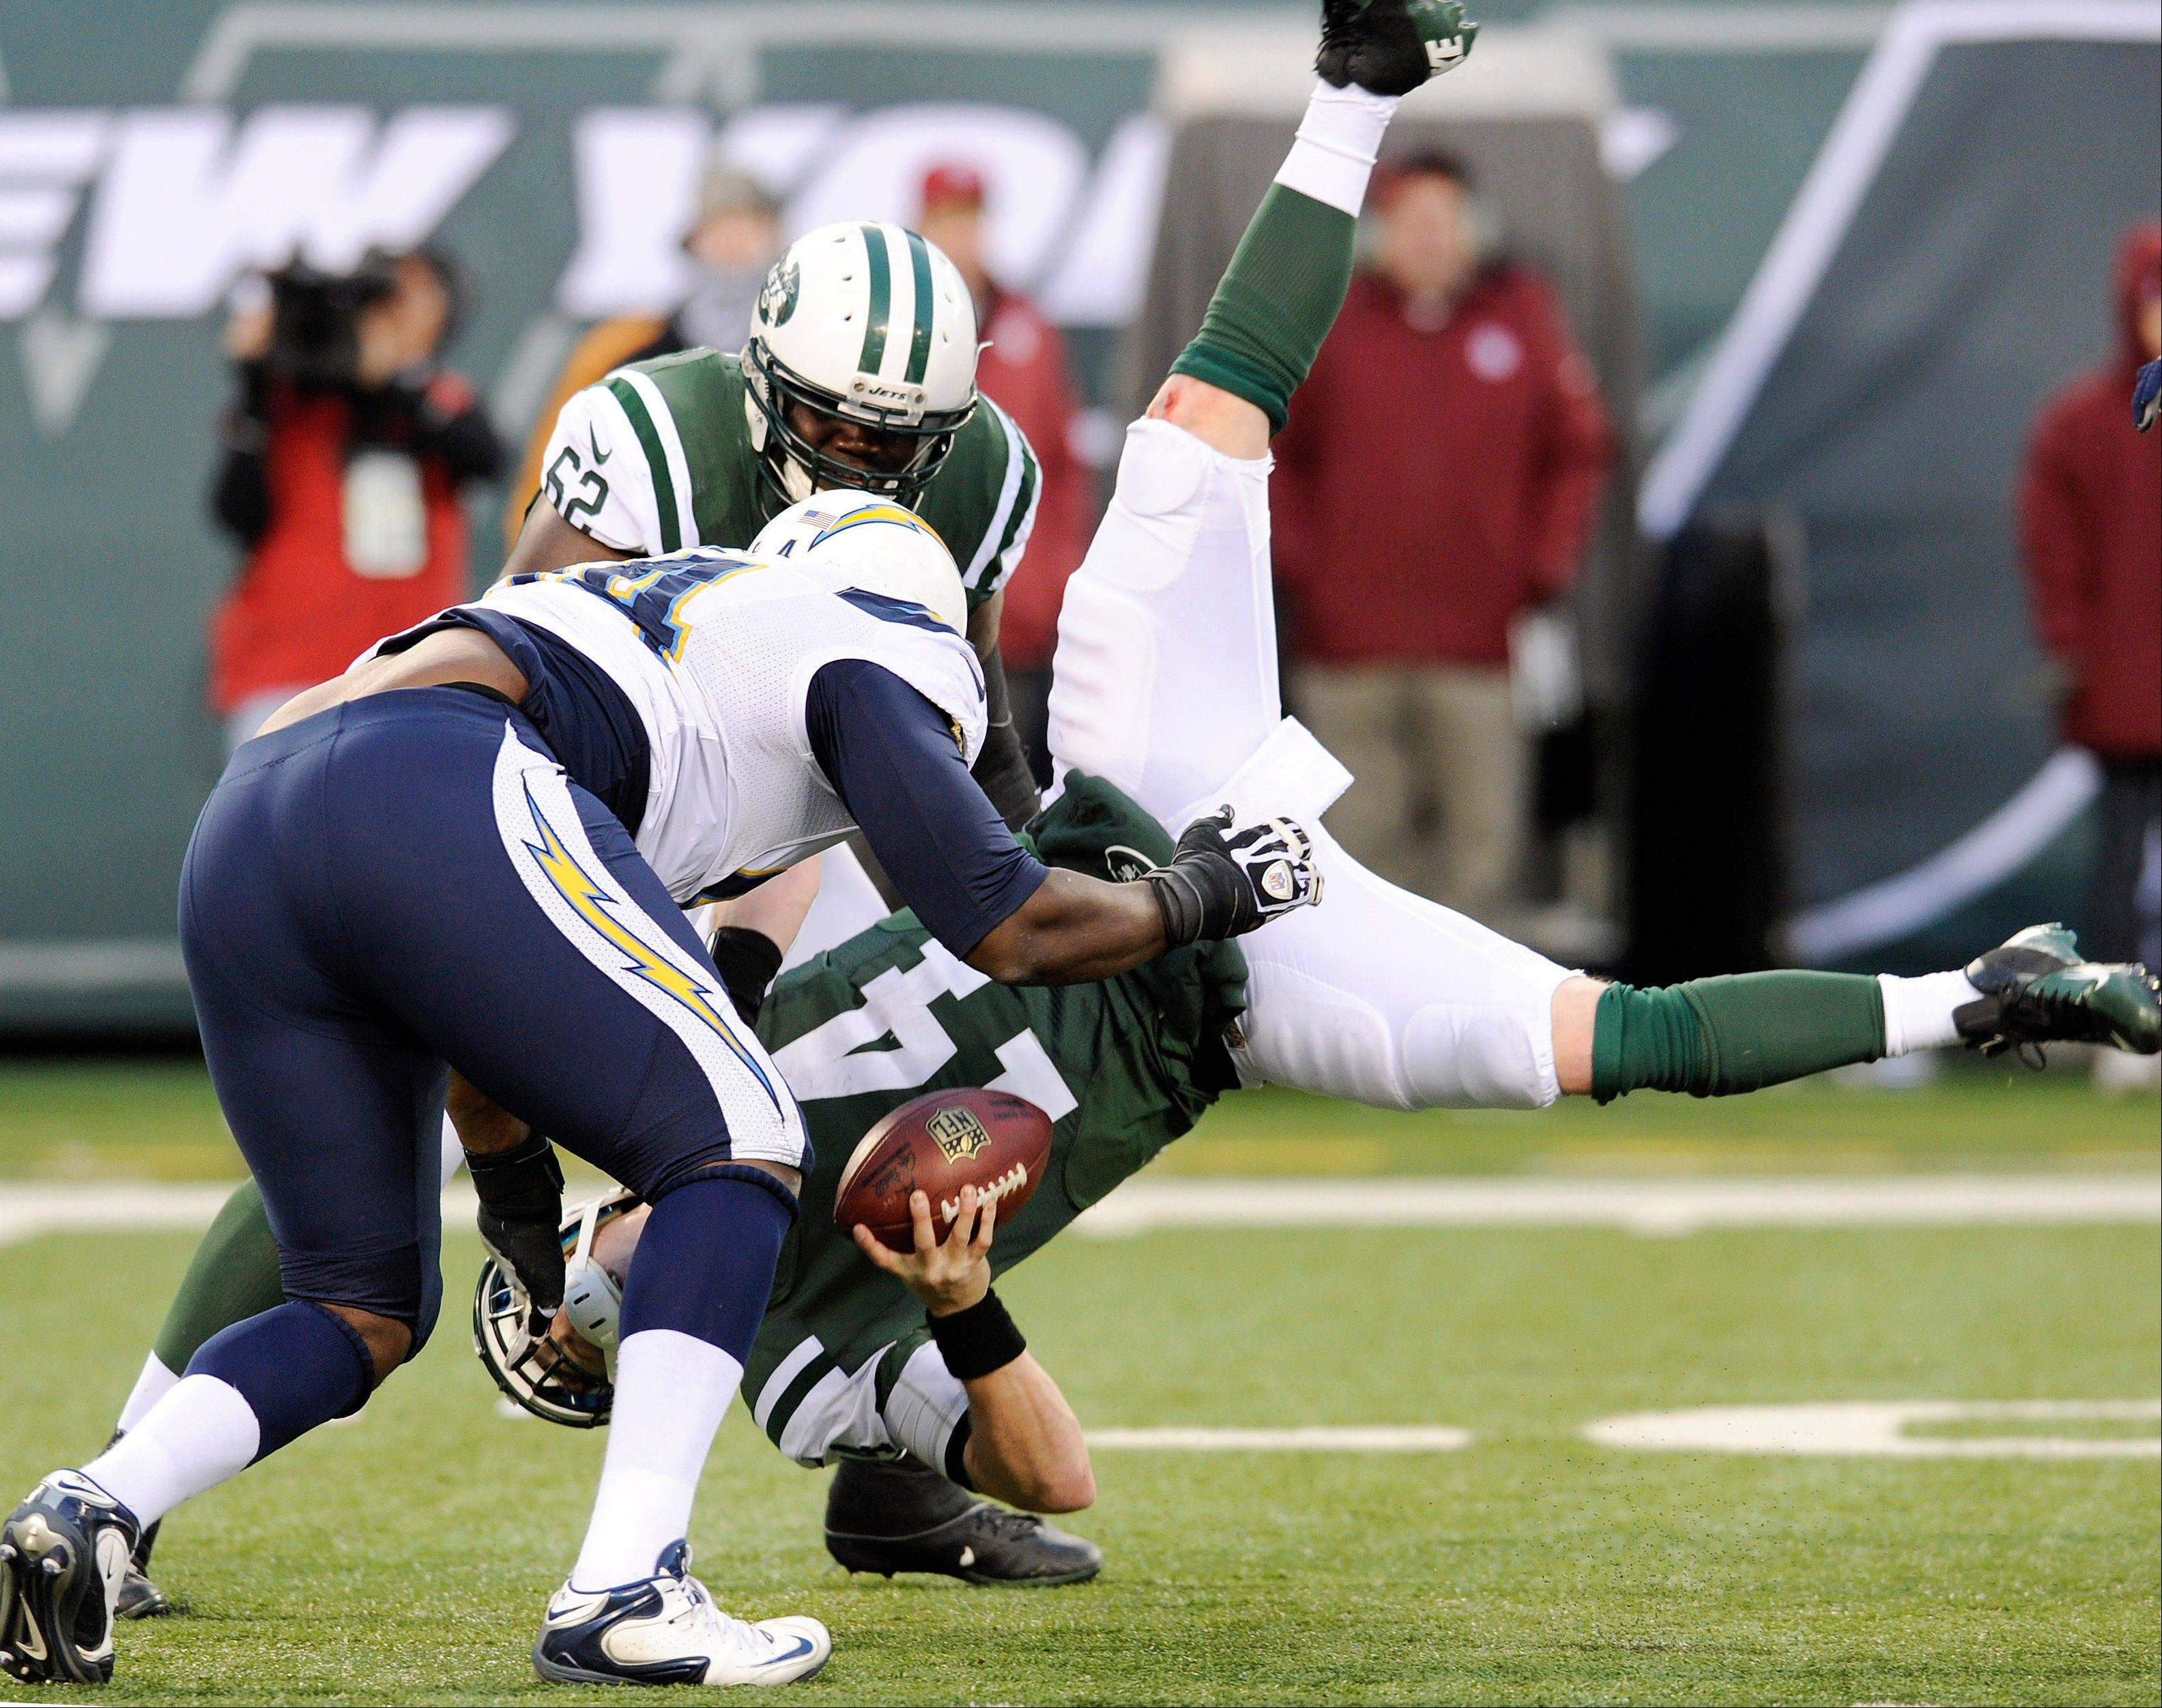 New York Jets quarterback Greg McElroy, bottom, is sacked by San Diego Chargers defensive end Corey Liuget, left, during the second half of an NFL football game on Sunday, Dec. 23, 2012, in East Rutherford, N.J. The Chargers won 27-17.